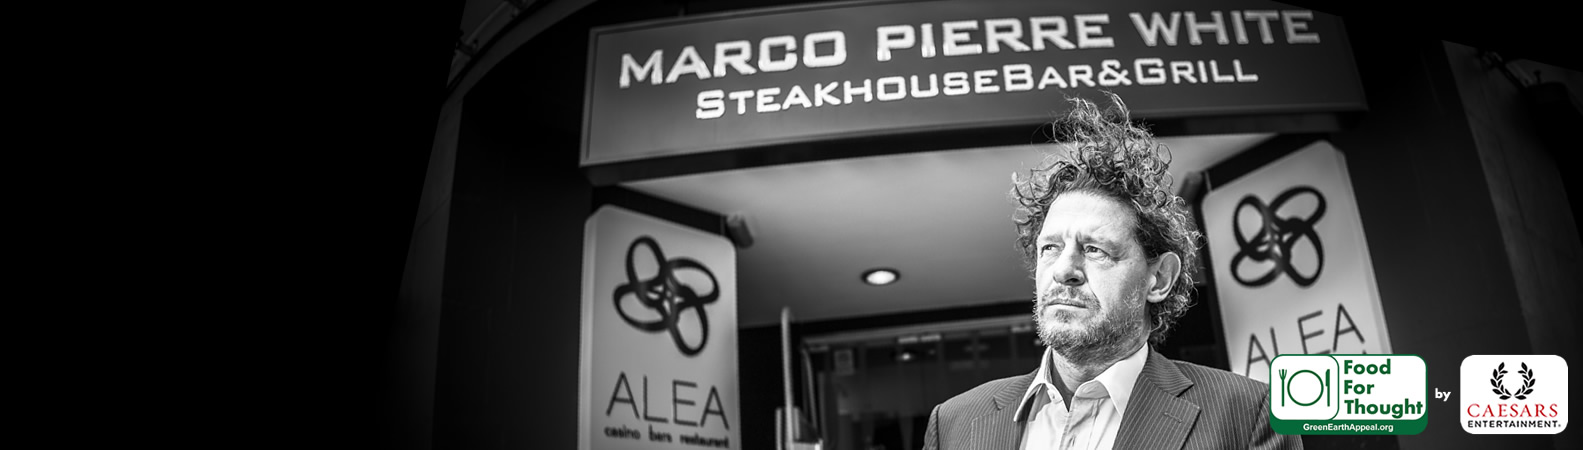 Marco Pierre White, three Michelin Star chef and Food For Thought Partner.